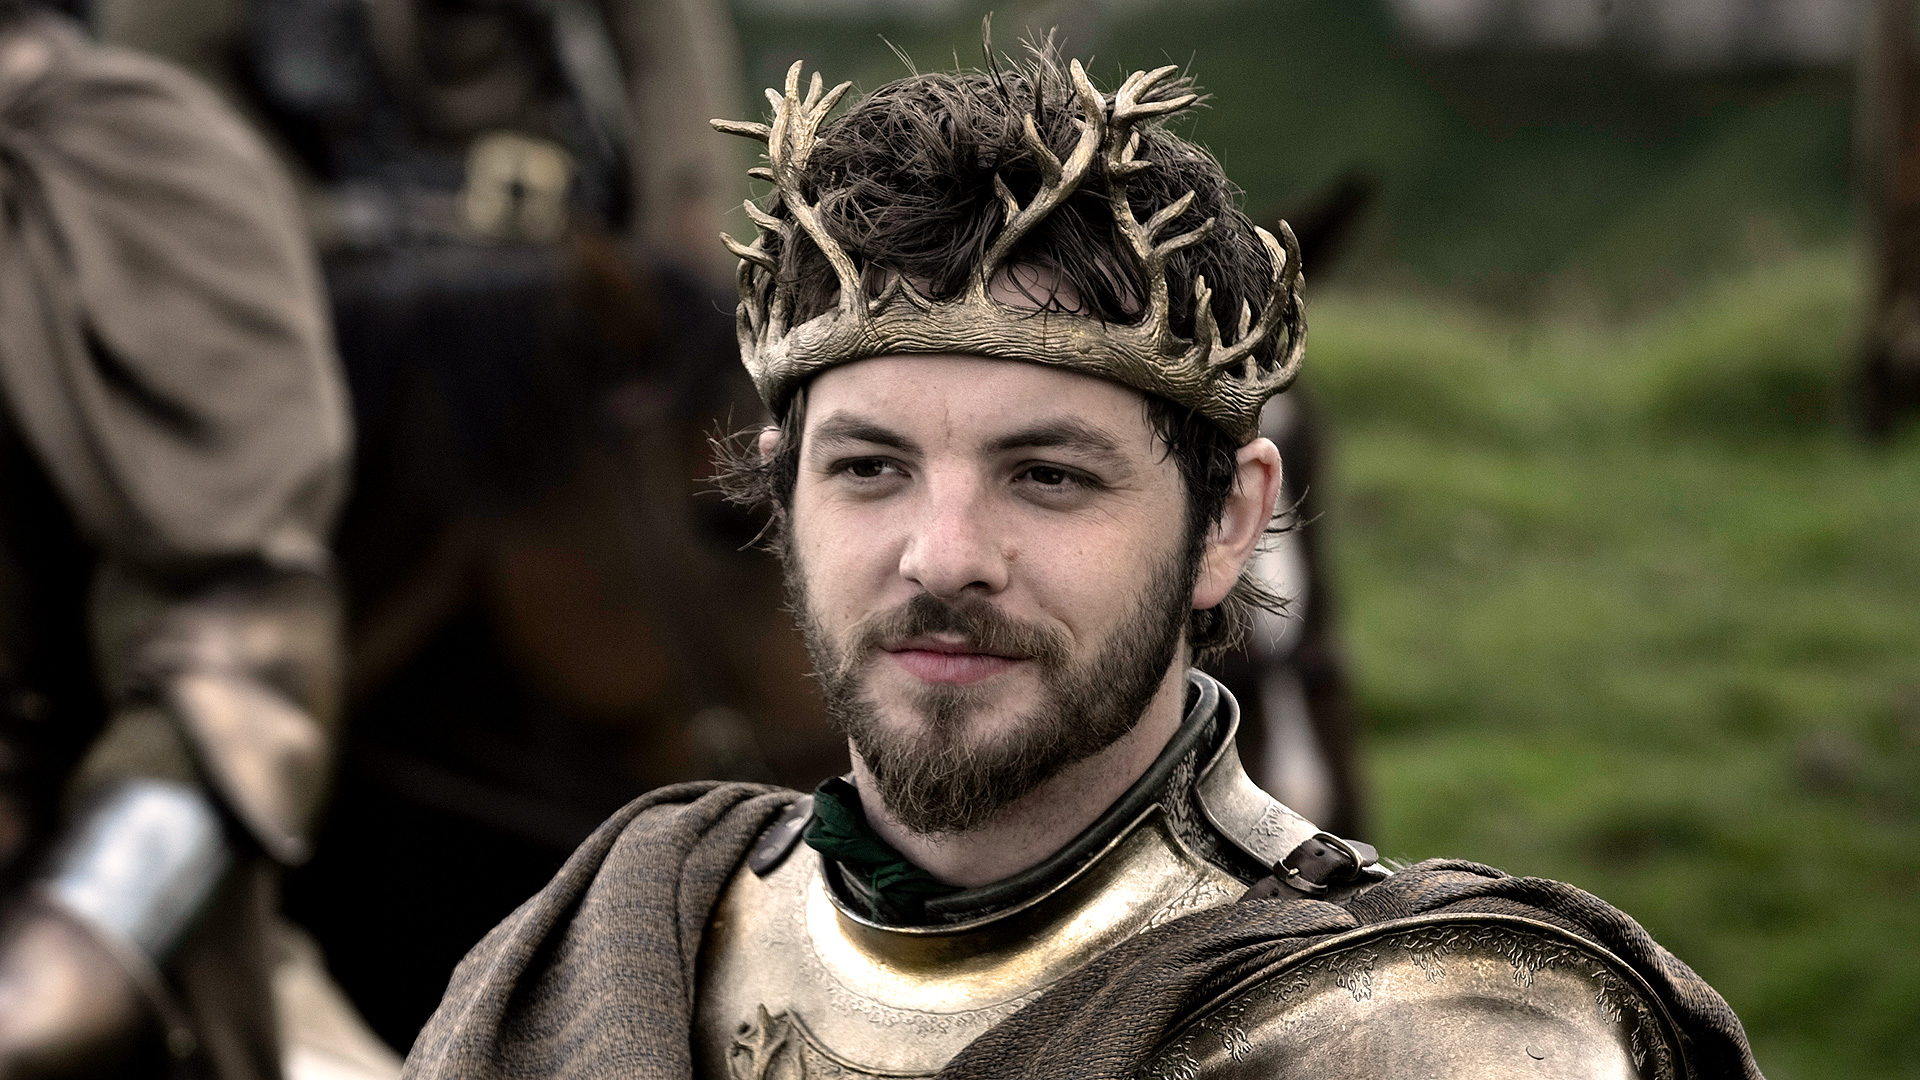 renly baratheon 1920